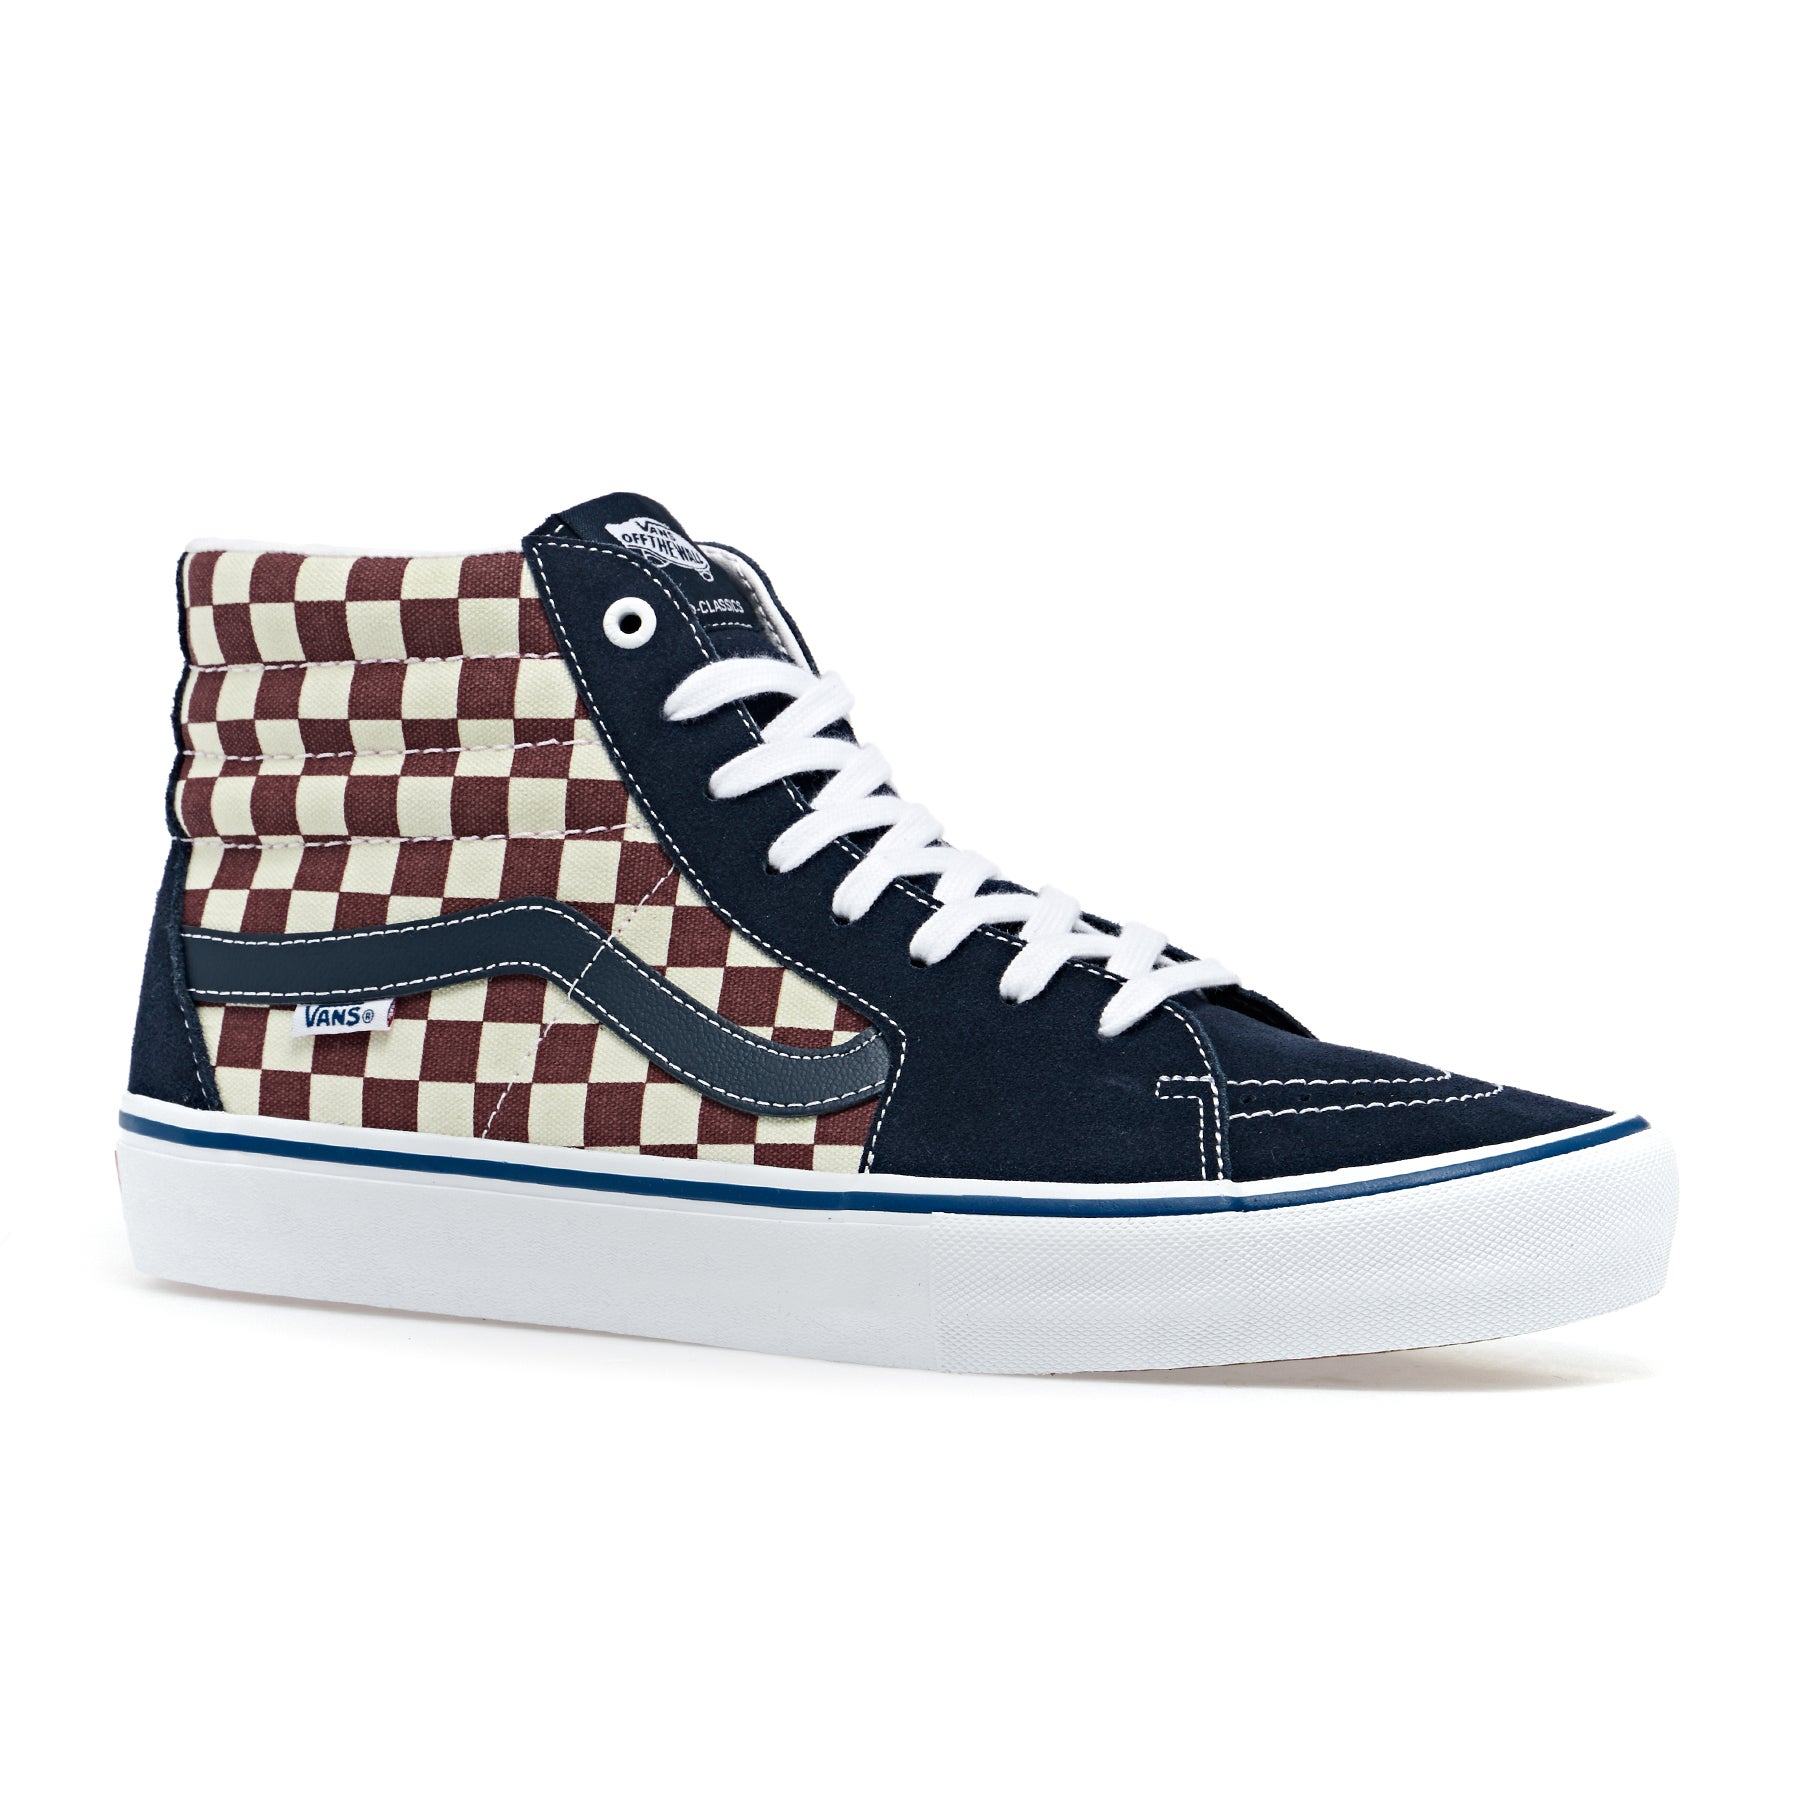 afed718b4134e7 Vans Sk8-Hi Pro Shoes - Free Delivery options on All Orders from ...